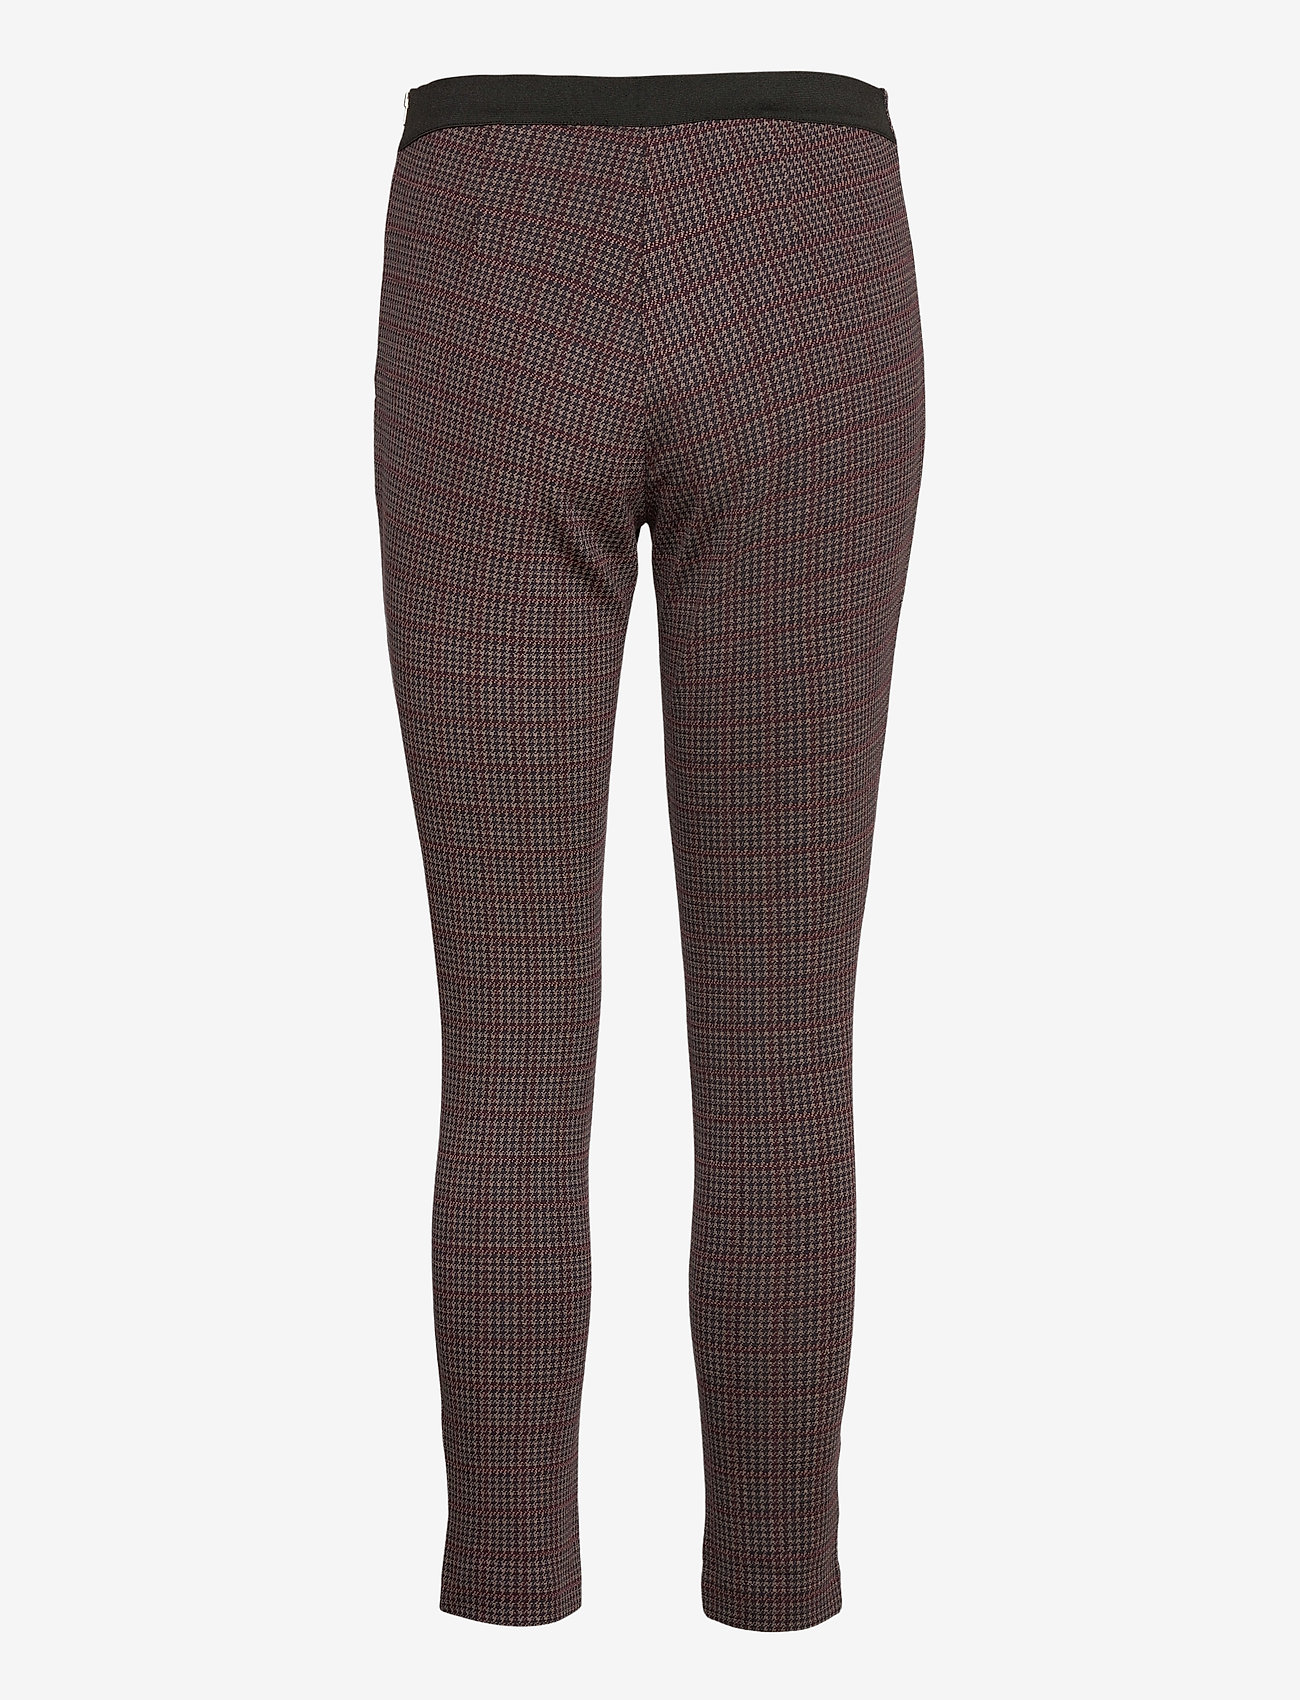 Mary Dgtth Jrsy Skinny Trouser (Charcoal Multi) (95 €) - French Connection V0kVQ